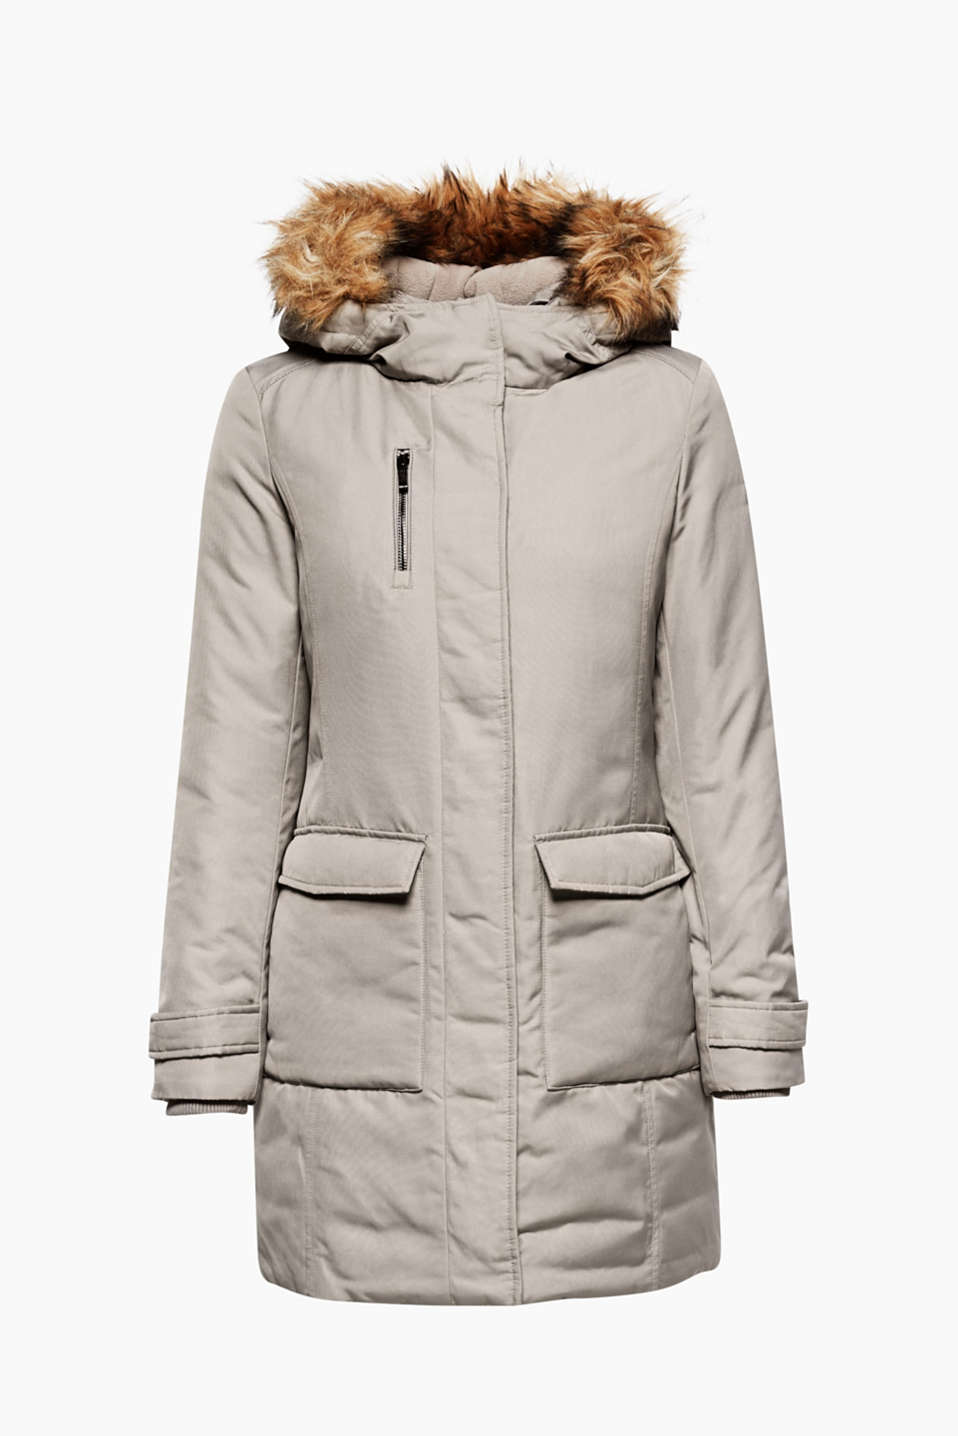 This fitted coat with high-quality padding and an elegant faux fur hood is sporty, timeless and winter-ready.